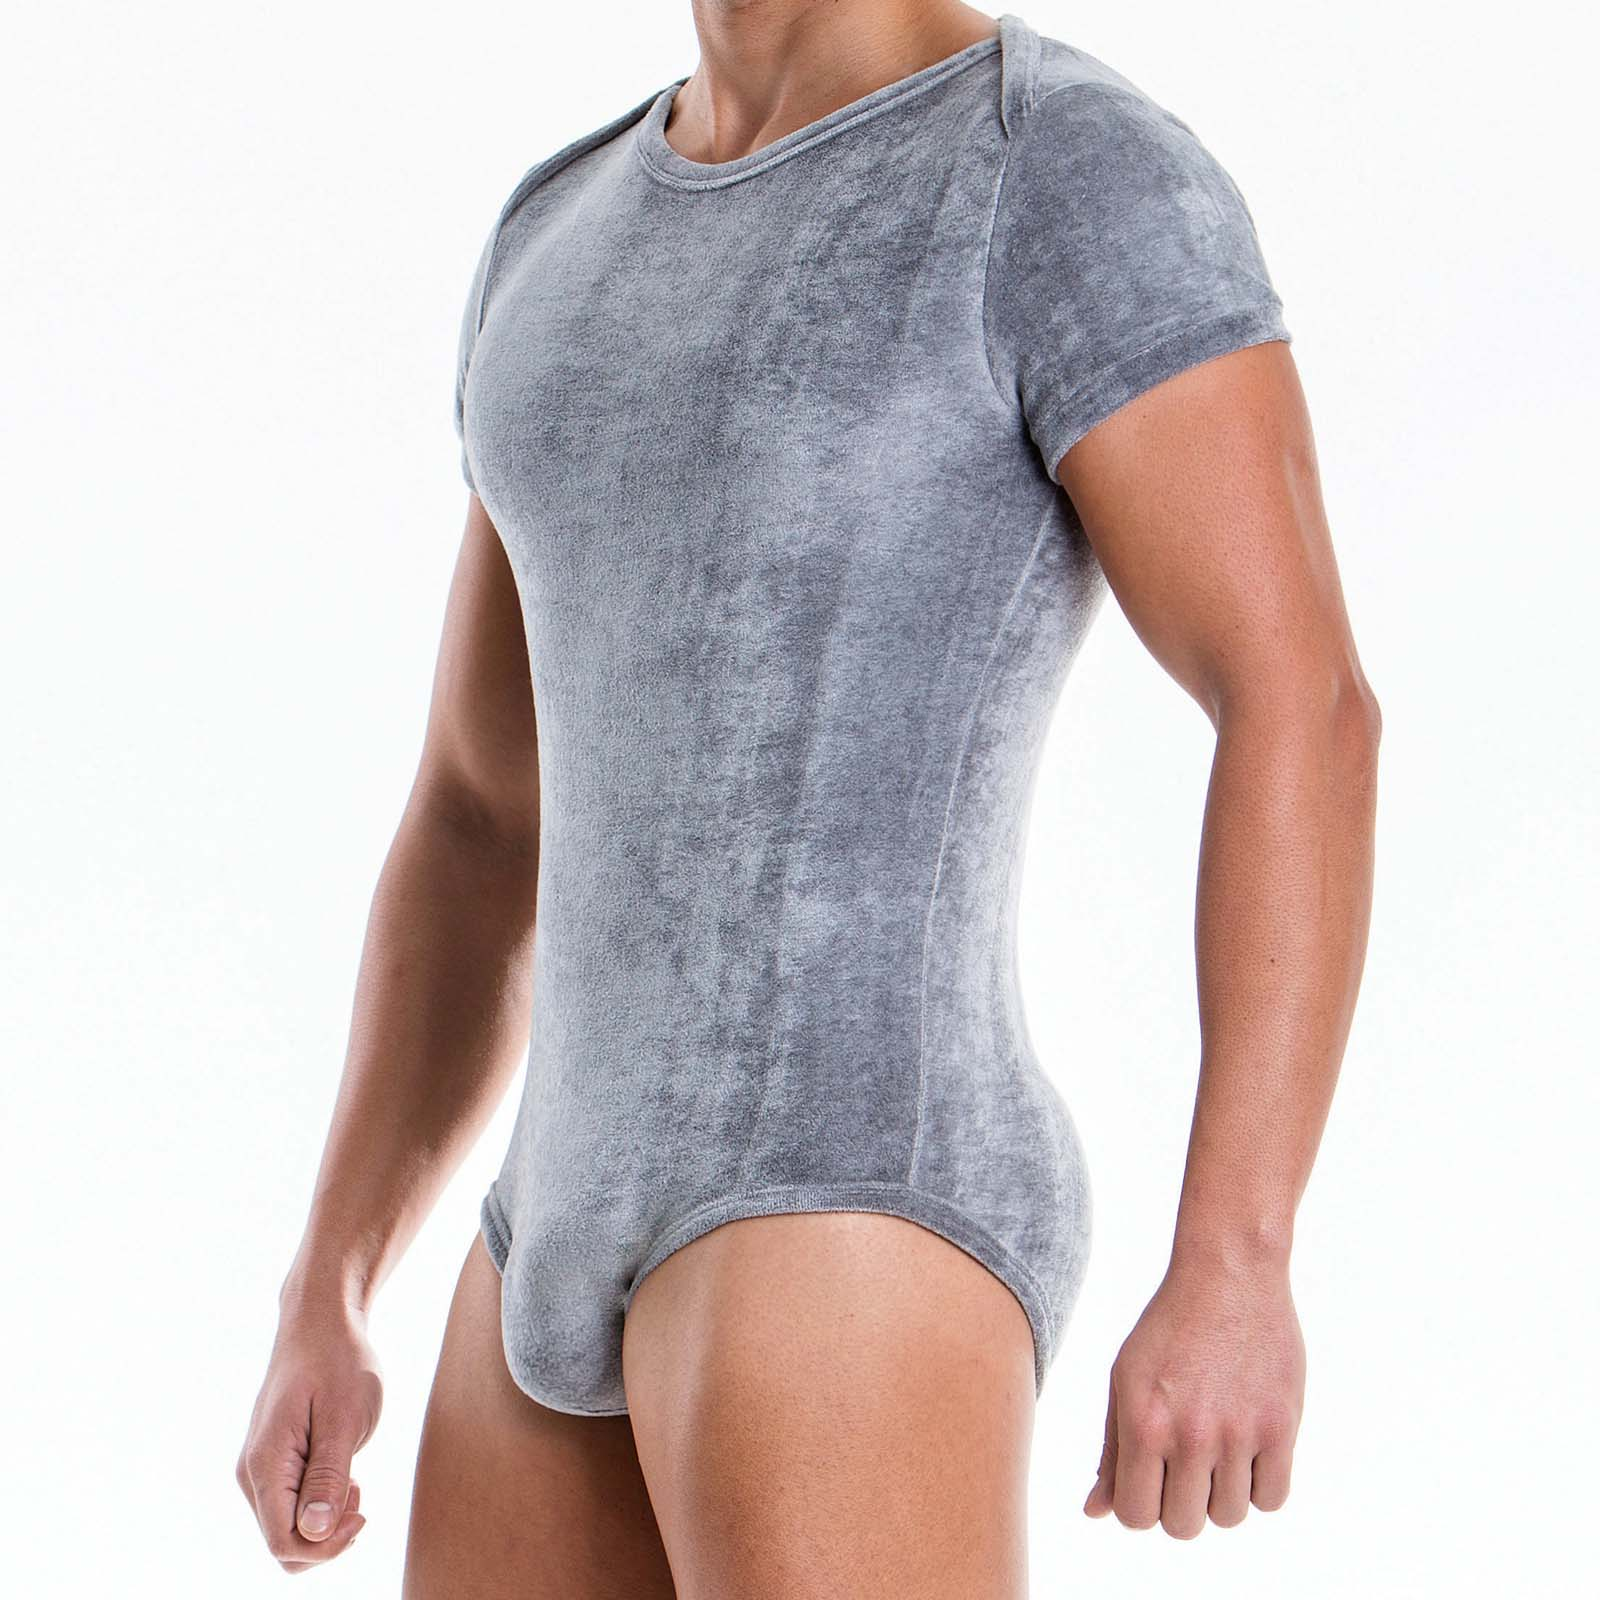 Body Modus Vivendi Virtus 21581